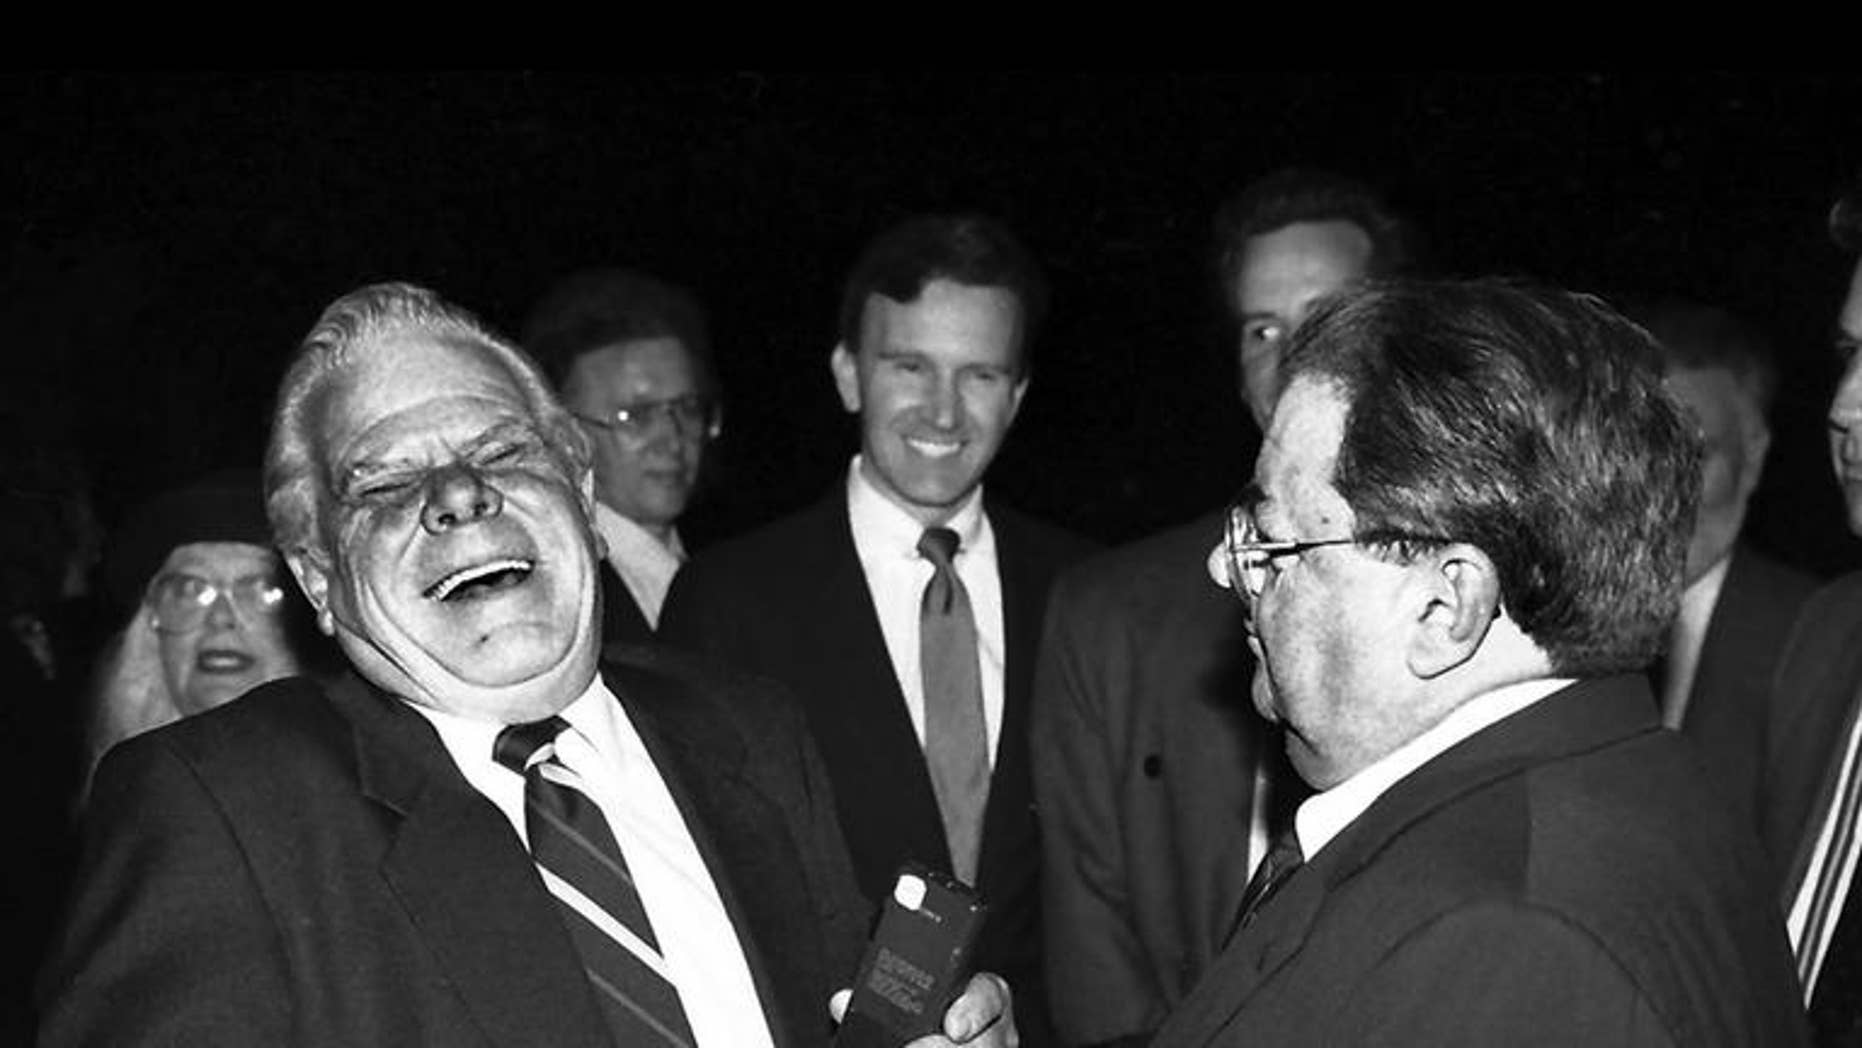 """Hanlon's fellow 'Our Gang' stars Tom """"Butch"""" Bond and George """"Spanky"""" McFarland (l-r) share a laugh in 1992."""